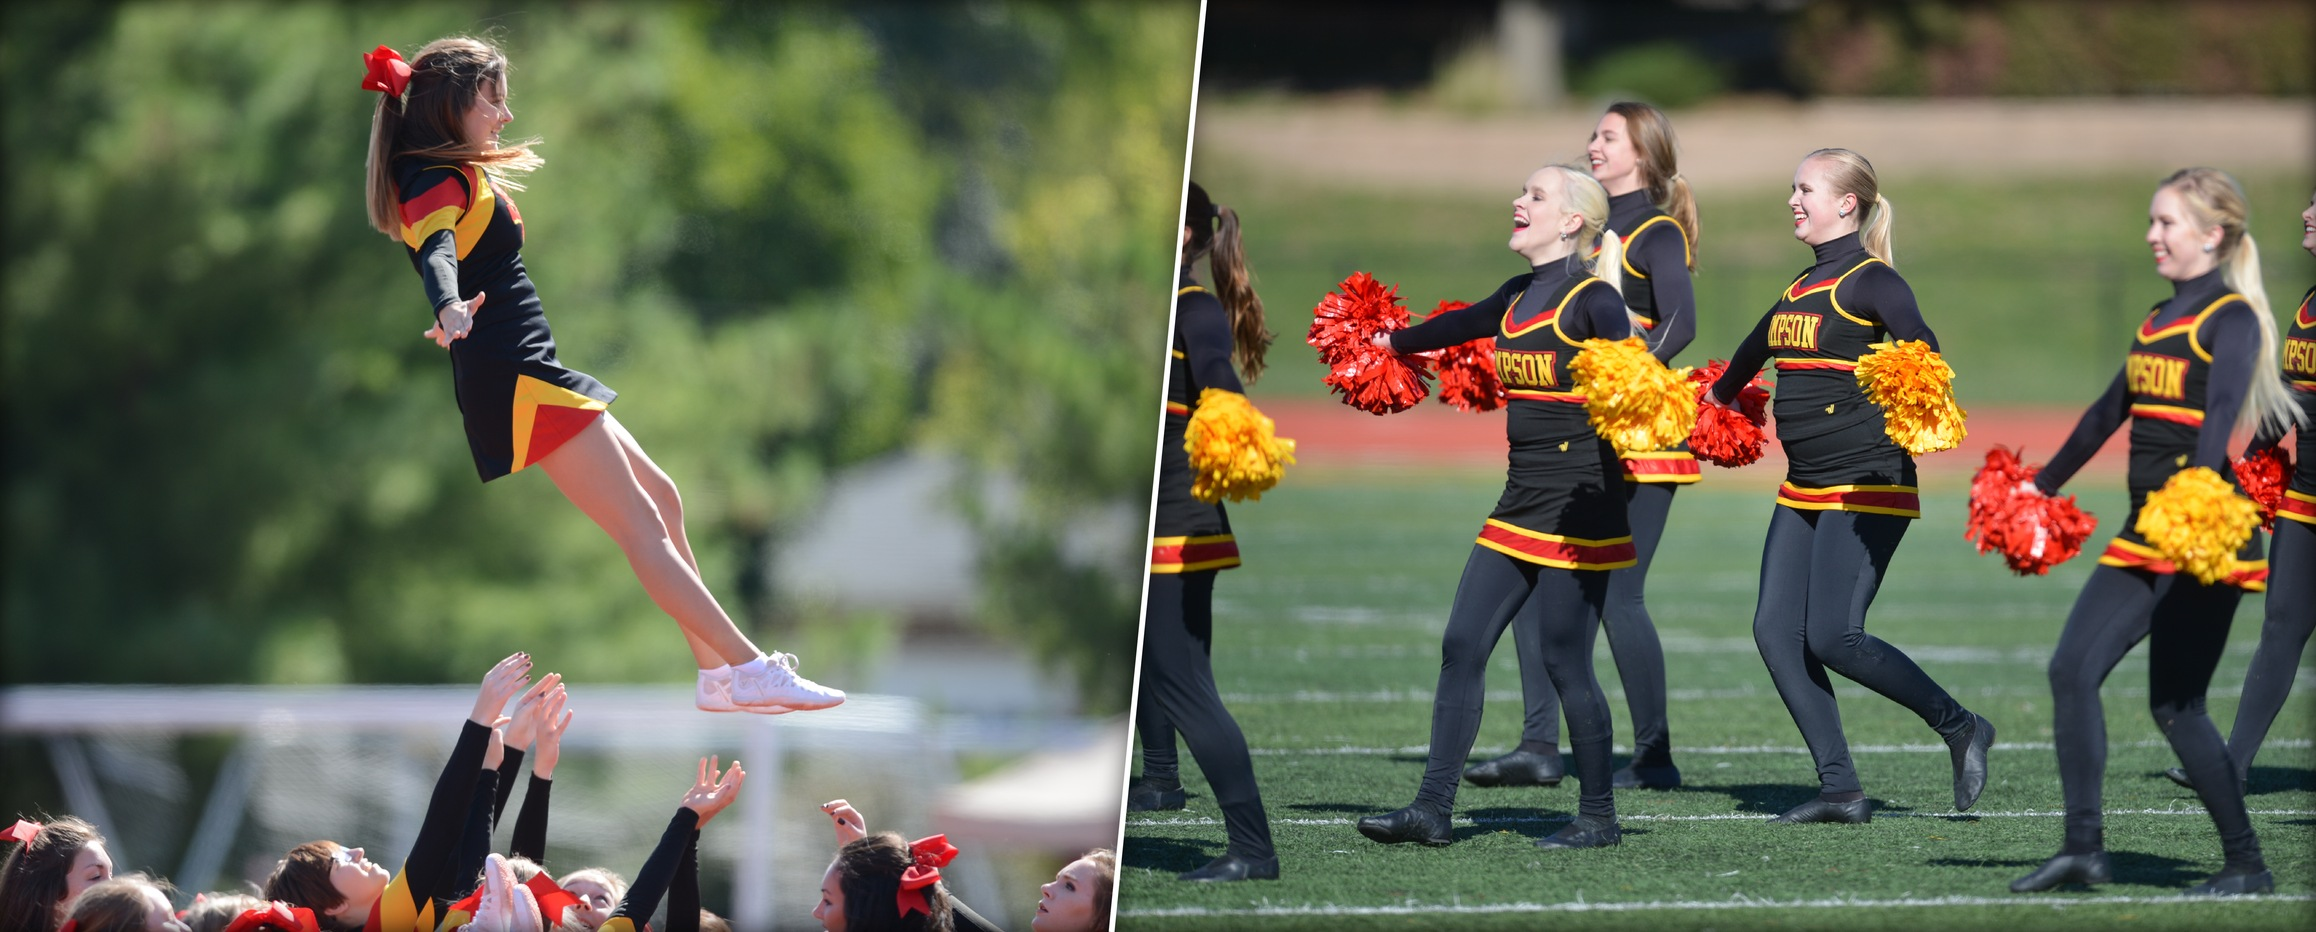 Cheer and Dance teams to compete at IIAC Invitational on Sunday